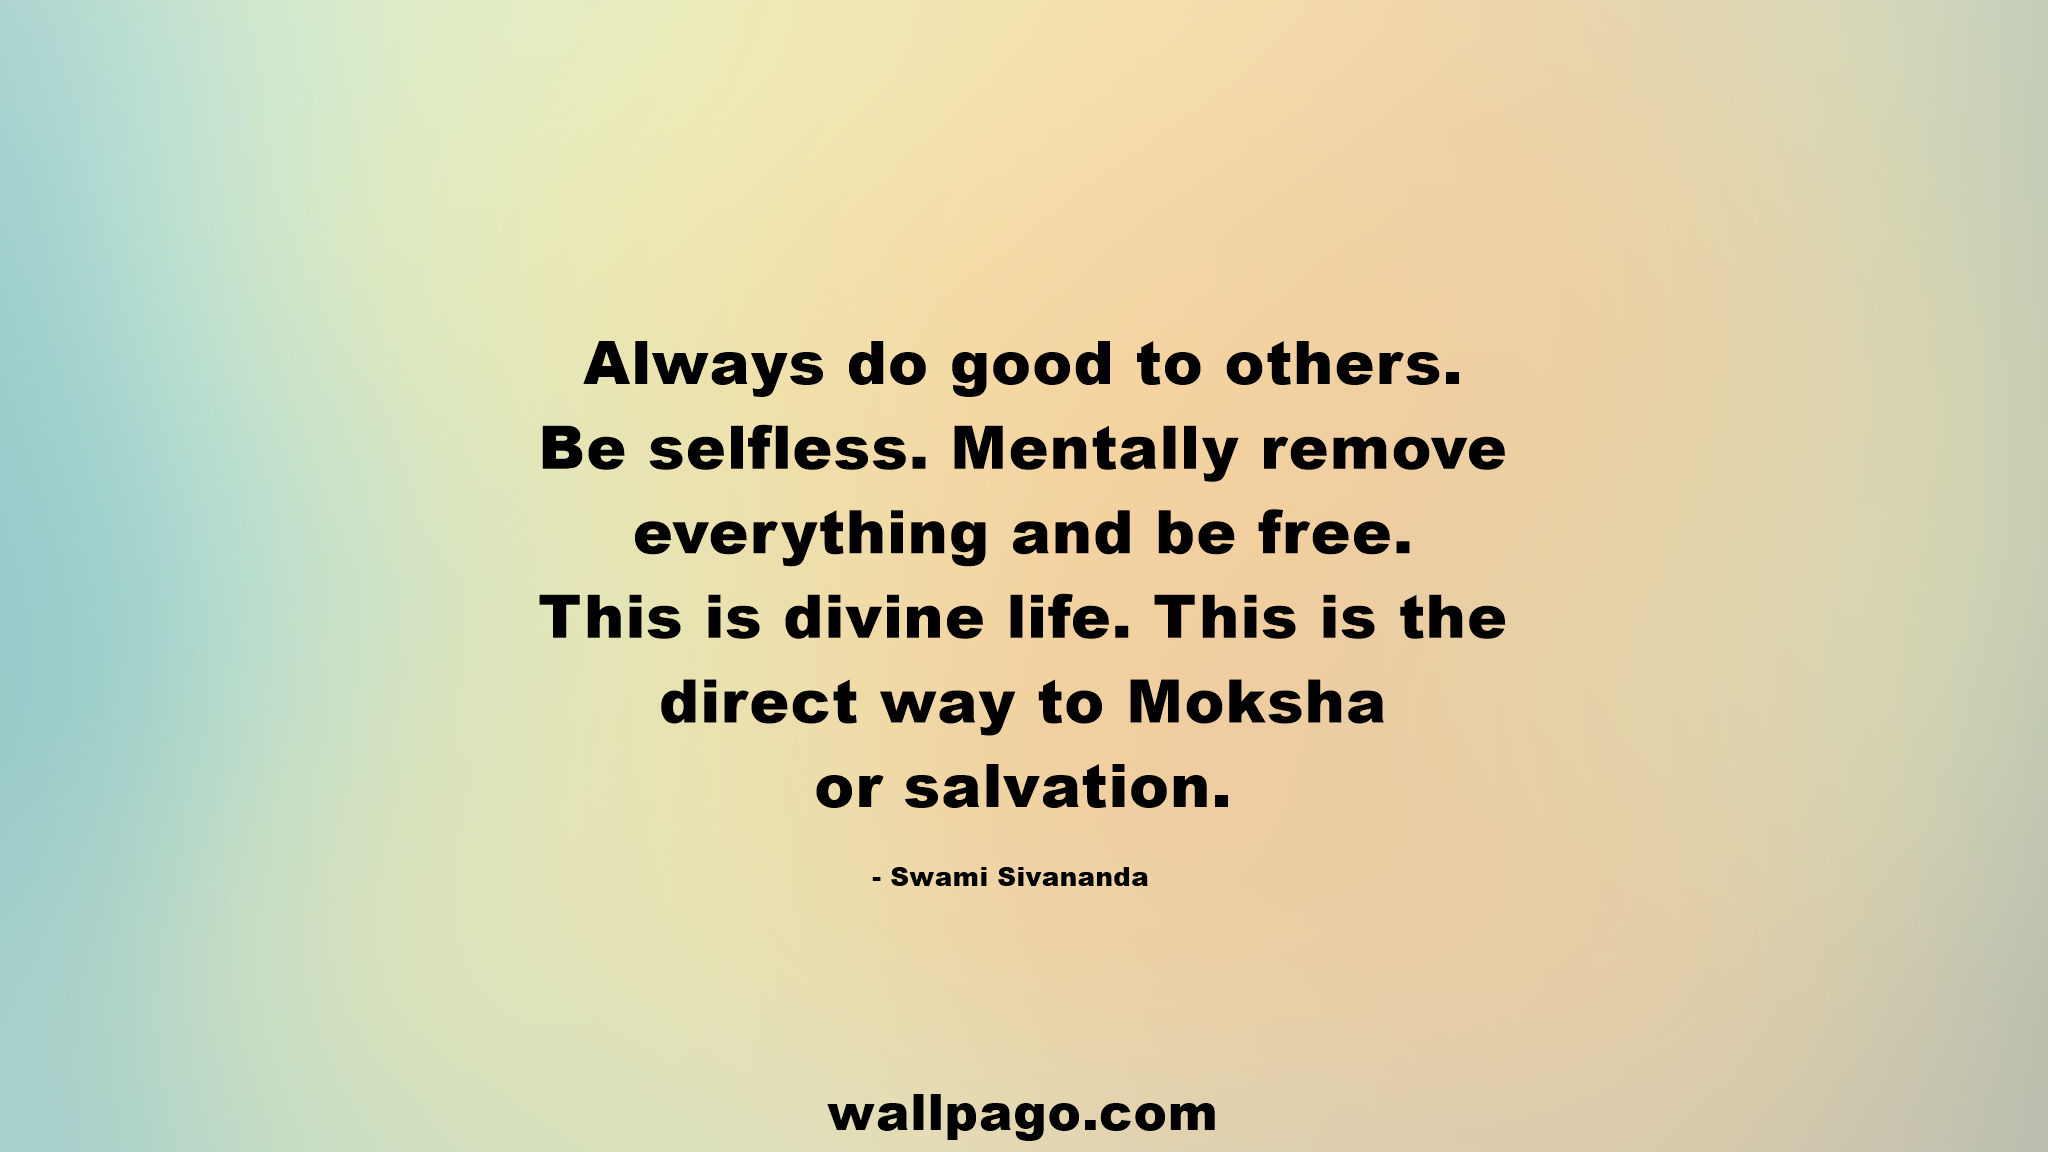 Always do good to others quote   Wallpago | Quotes Wallpapers